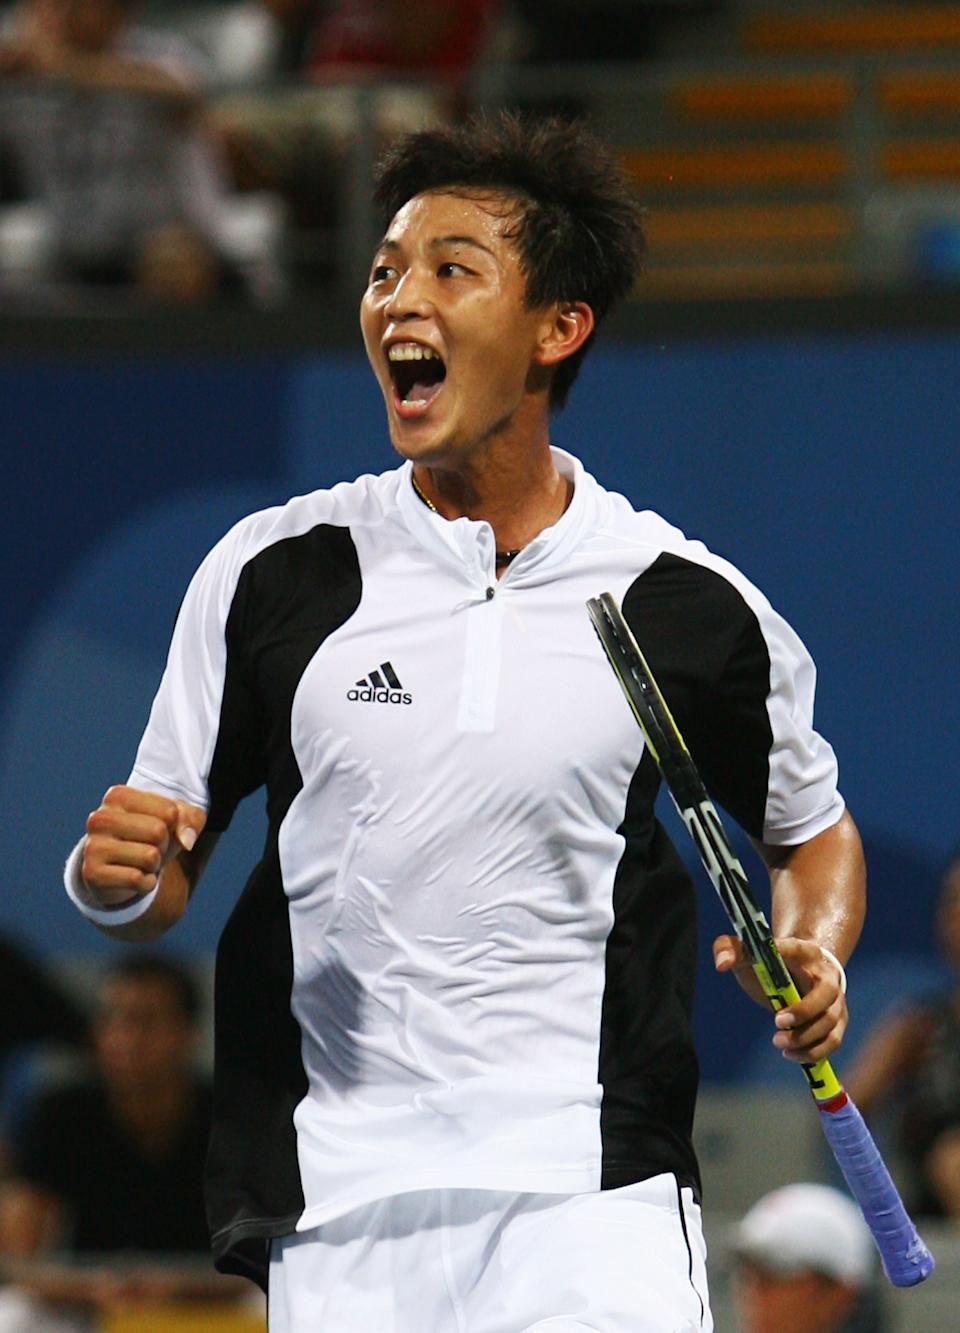 BEIJING - AUGUST 11:  Lu Yen-Hsun of Chinese Taipei celebrates winning match point against Andy Murray of Great Britain in the Men's Singles First Round match at the Olympic Green Tennis Center on Day 3 of the Beijing 2008 Olympic Games on August 11, 2008 in Beijing, China.  (Photo by Julian Finney/Getty Images)